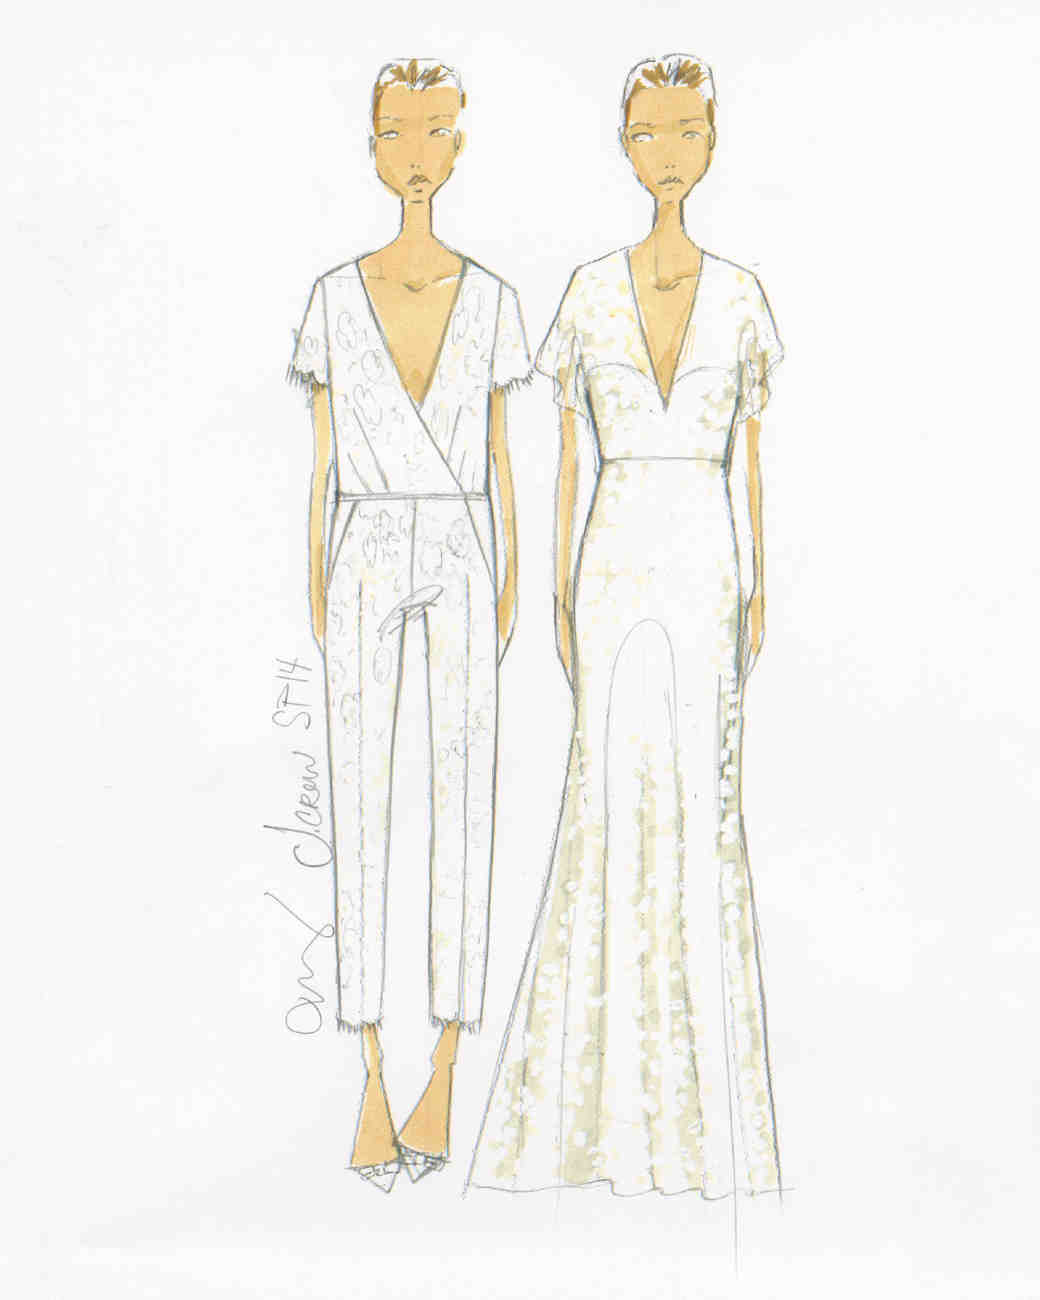 msw-bridal-sketches-inspiration-j-crew-1.jpg